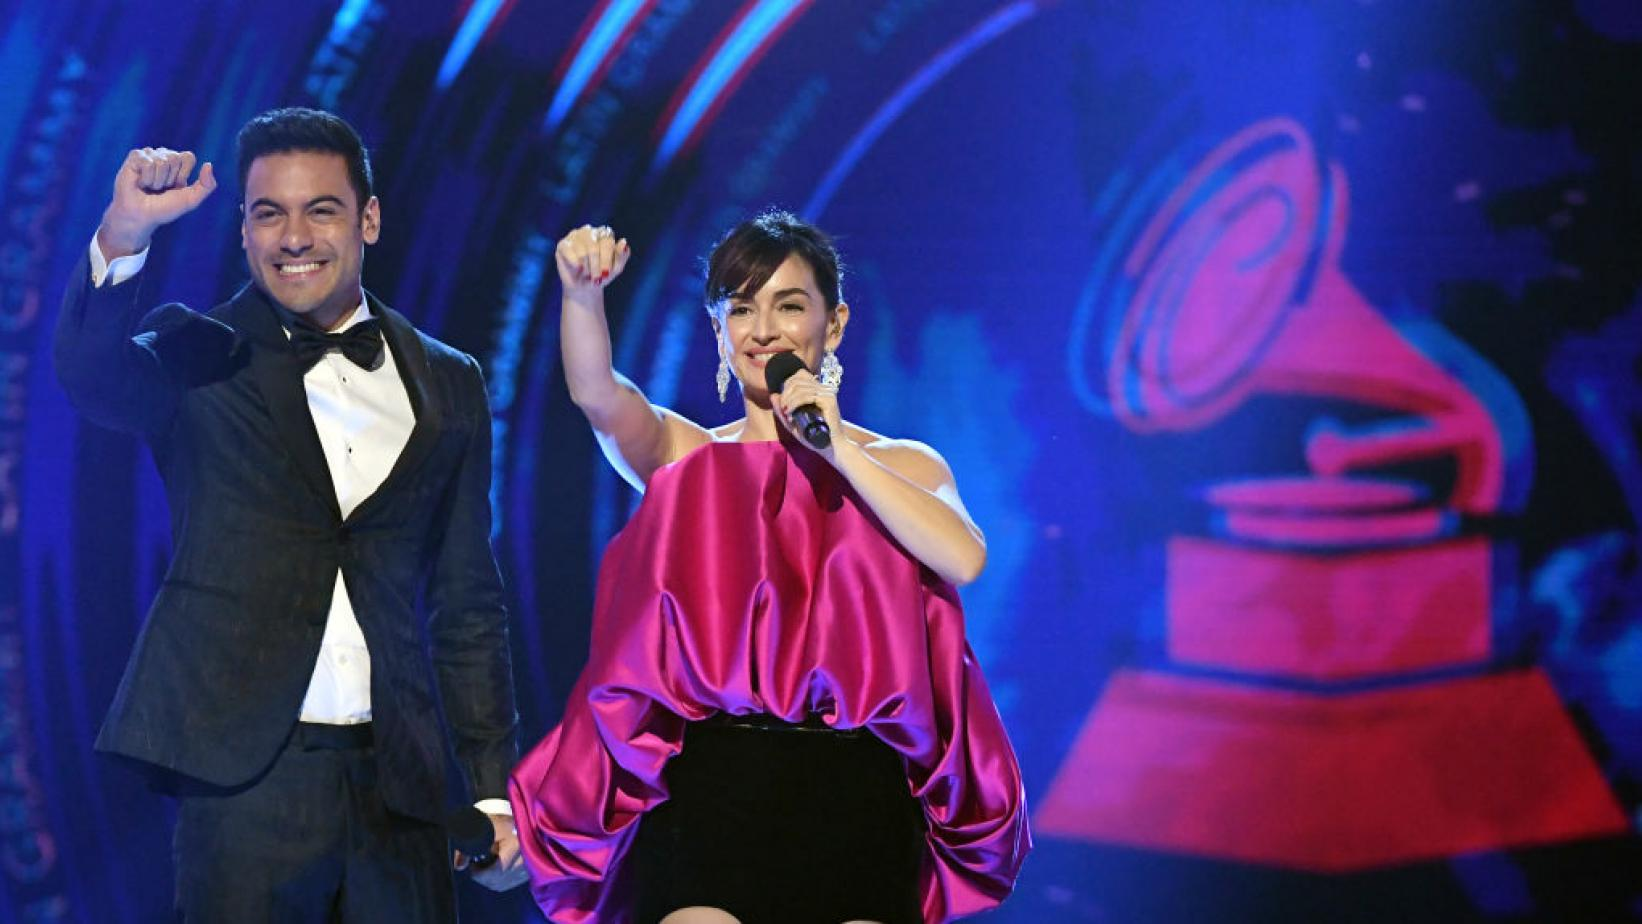 Hosts Carlos Rivera and Ana de la Reguera